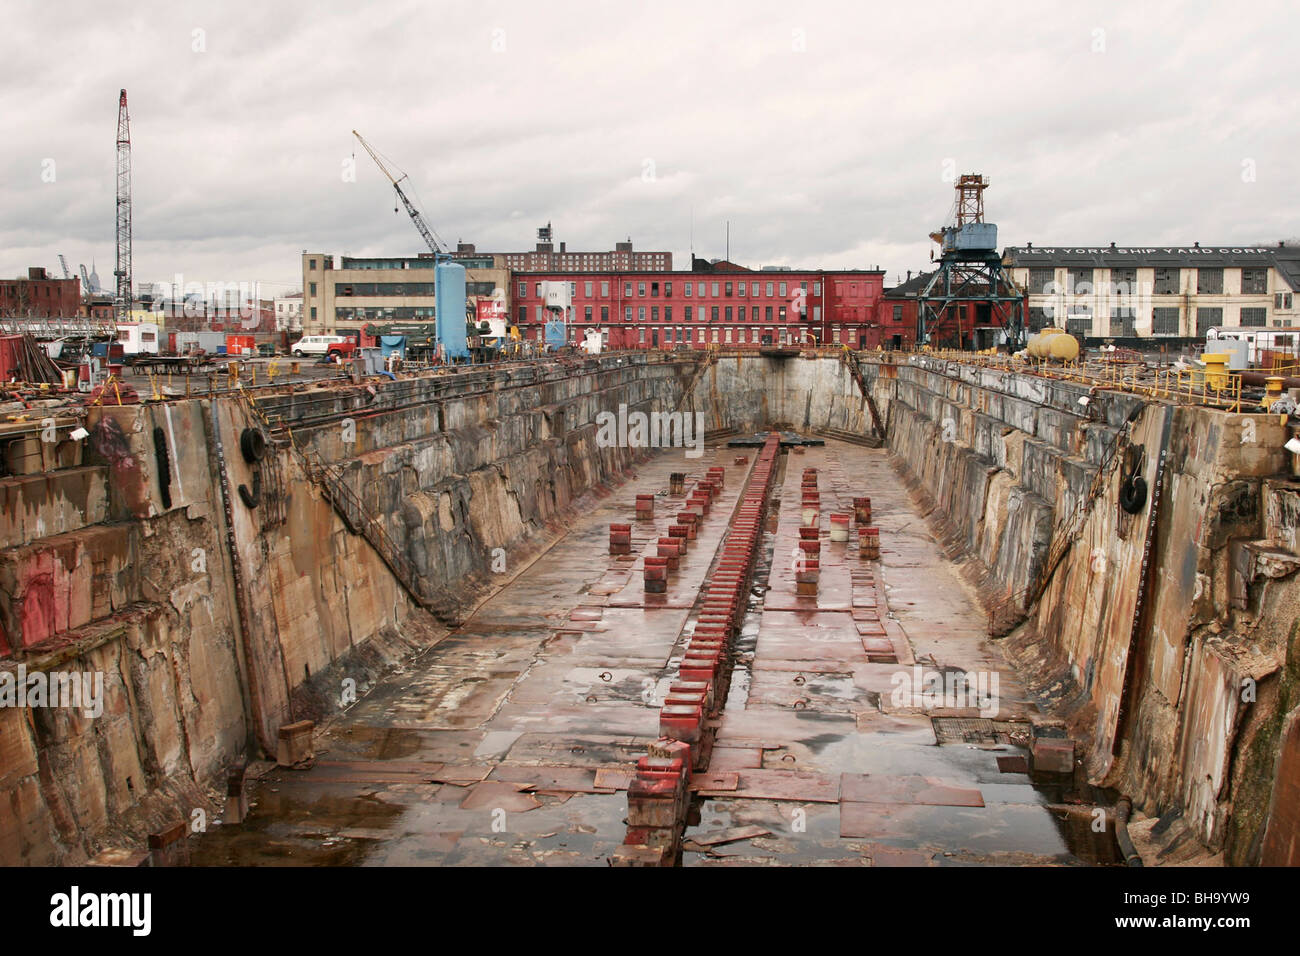 new york shipyard ikea brooklyn ny empty dry dock stock photo royalty free image 27878965 alamy. Black Bedroom Furniture Sets. Home Design Ideas